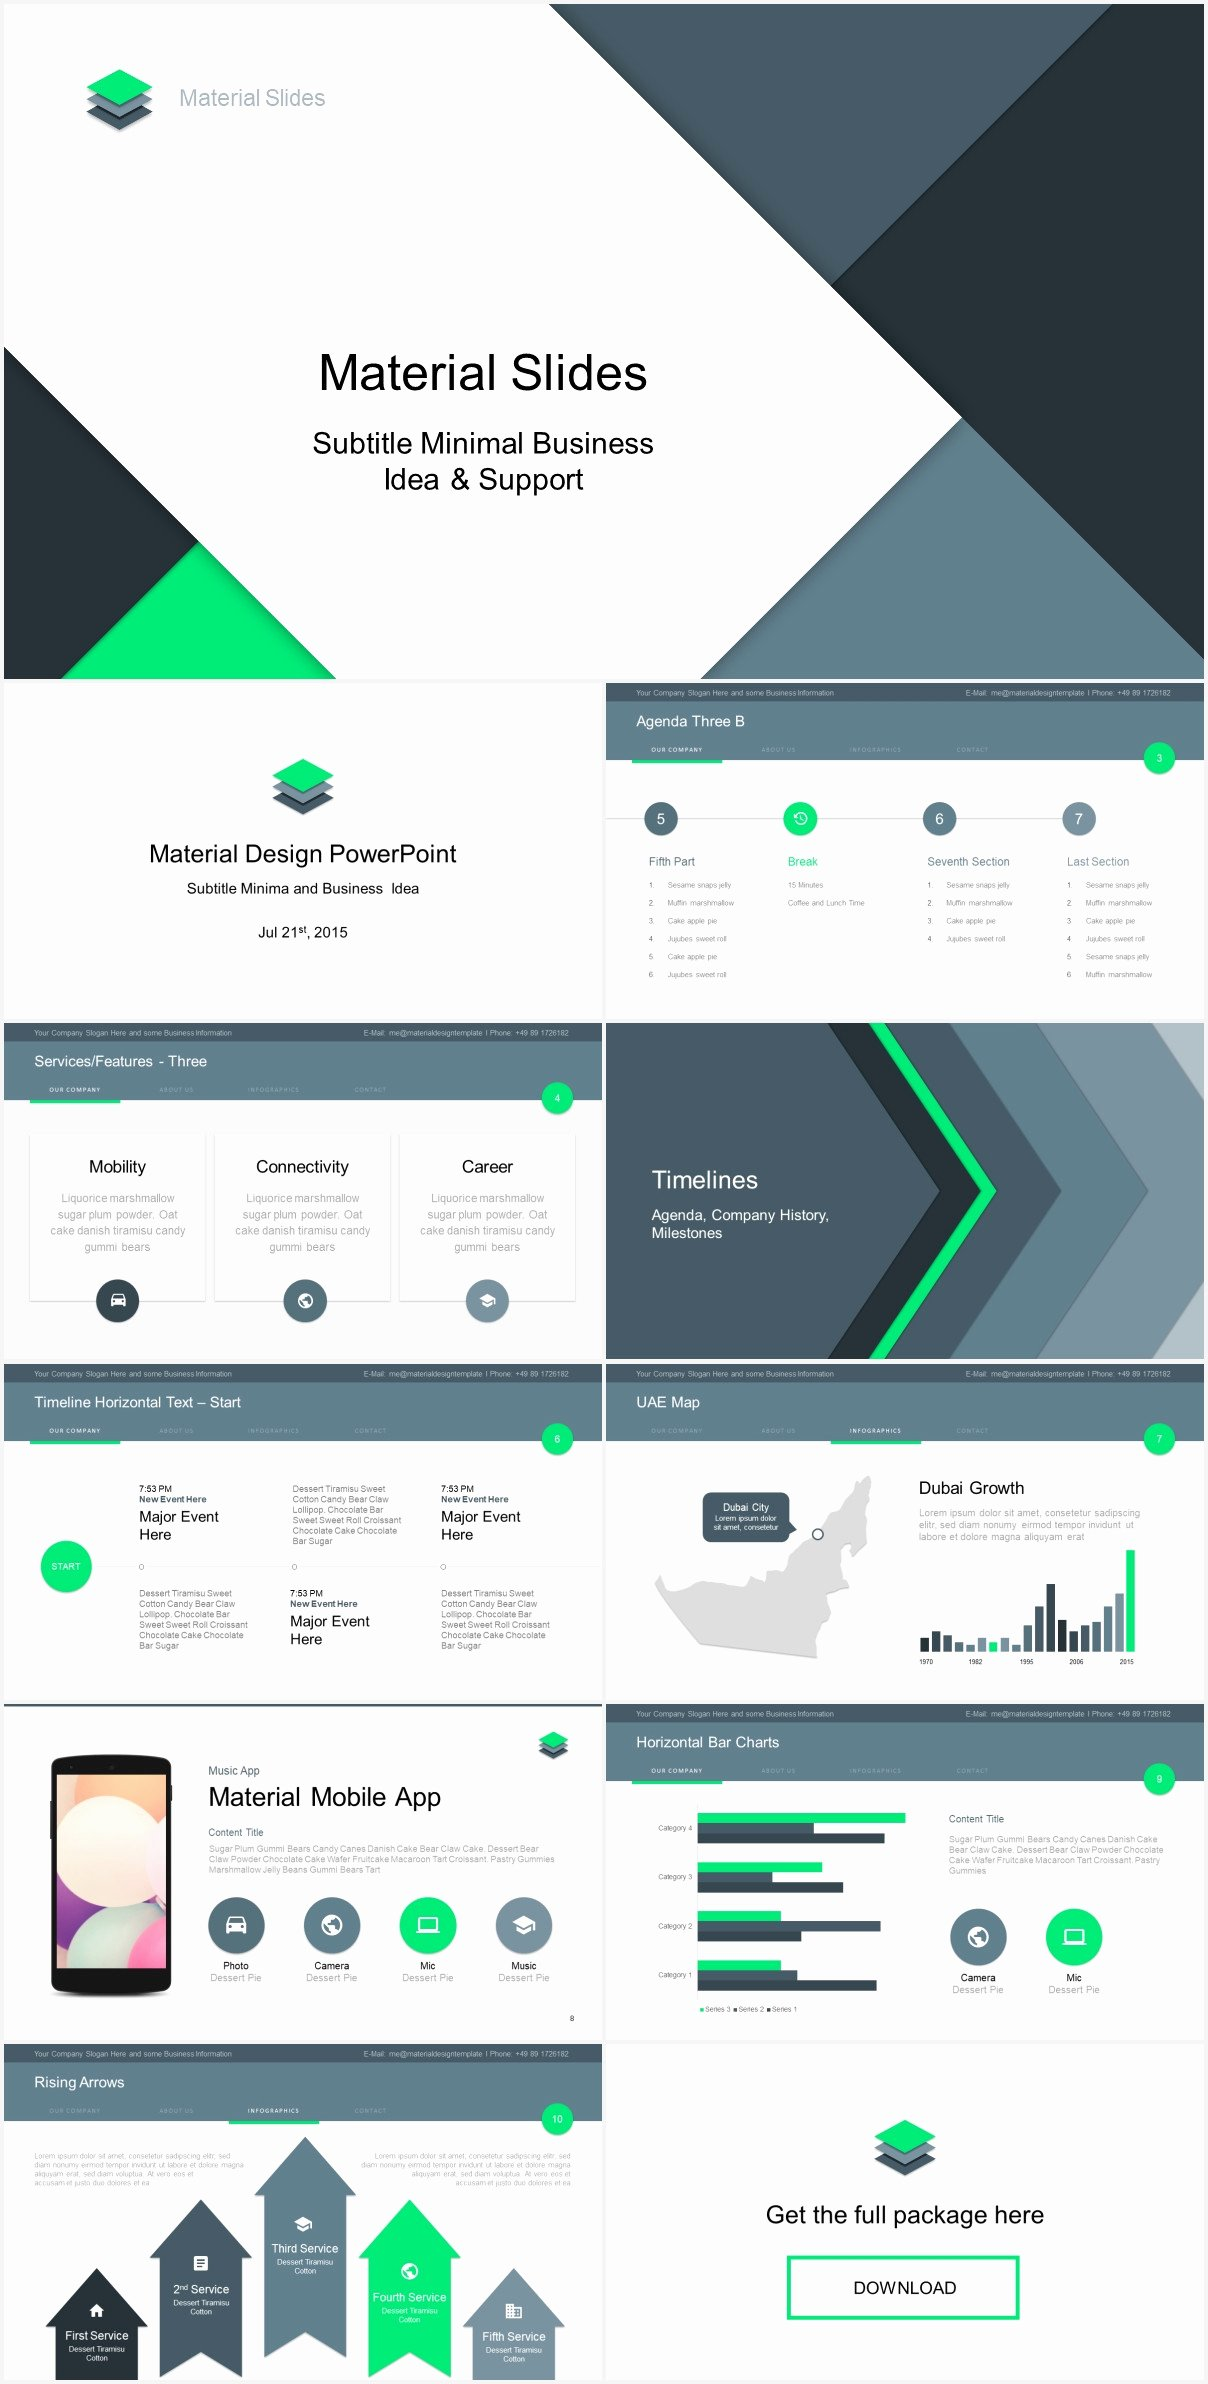 Material Design Powerpoint Template Free Download – Freetmpl